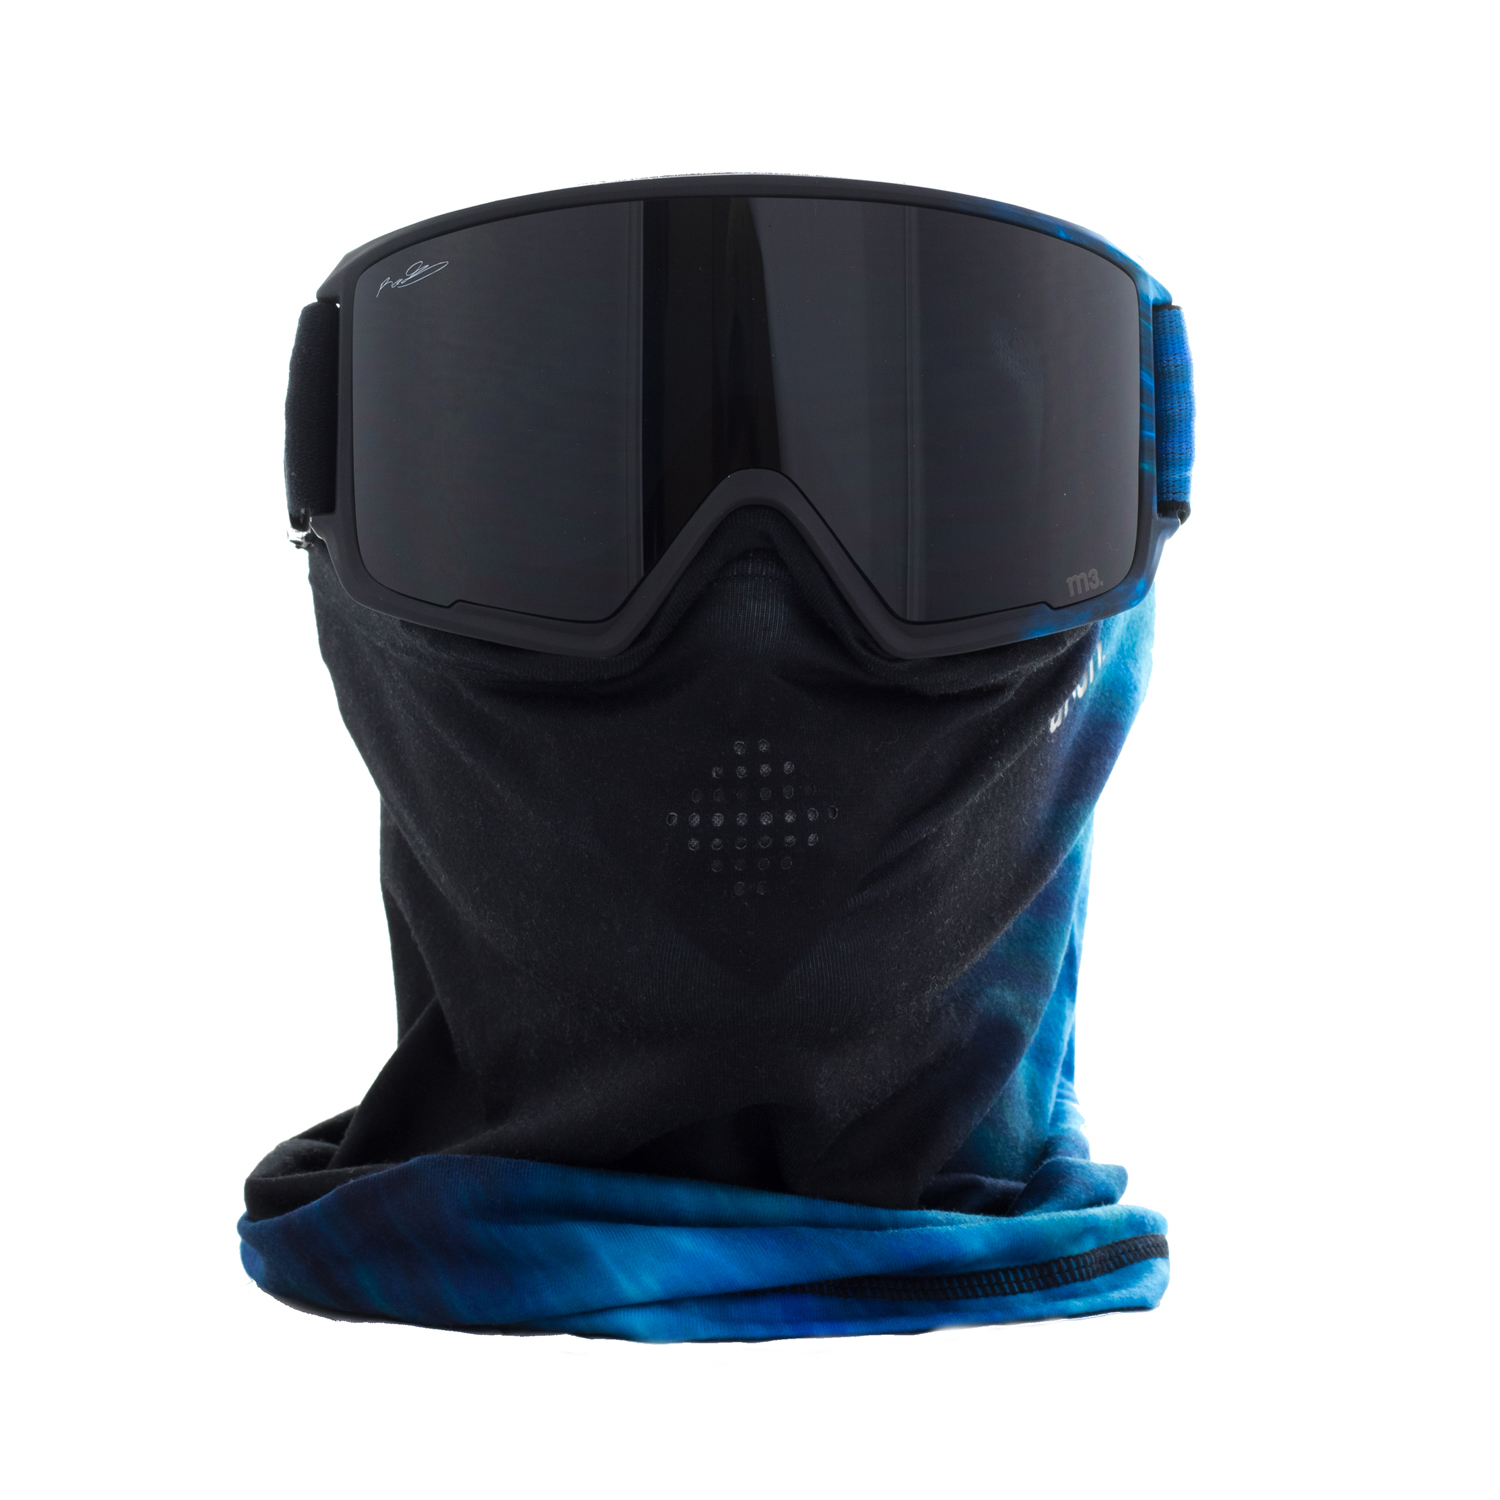 anon goggles  Anon M3 Bode Merrill MFI Snow Goggle Dark Smoke - ATBShop.co.uk